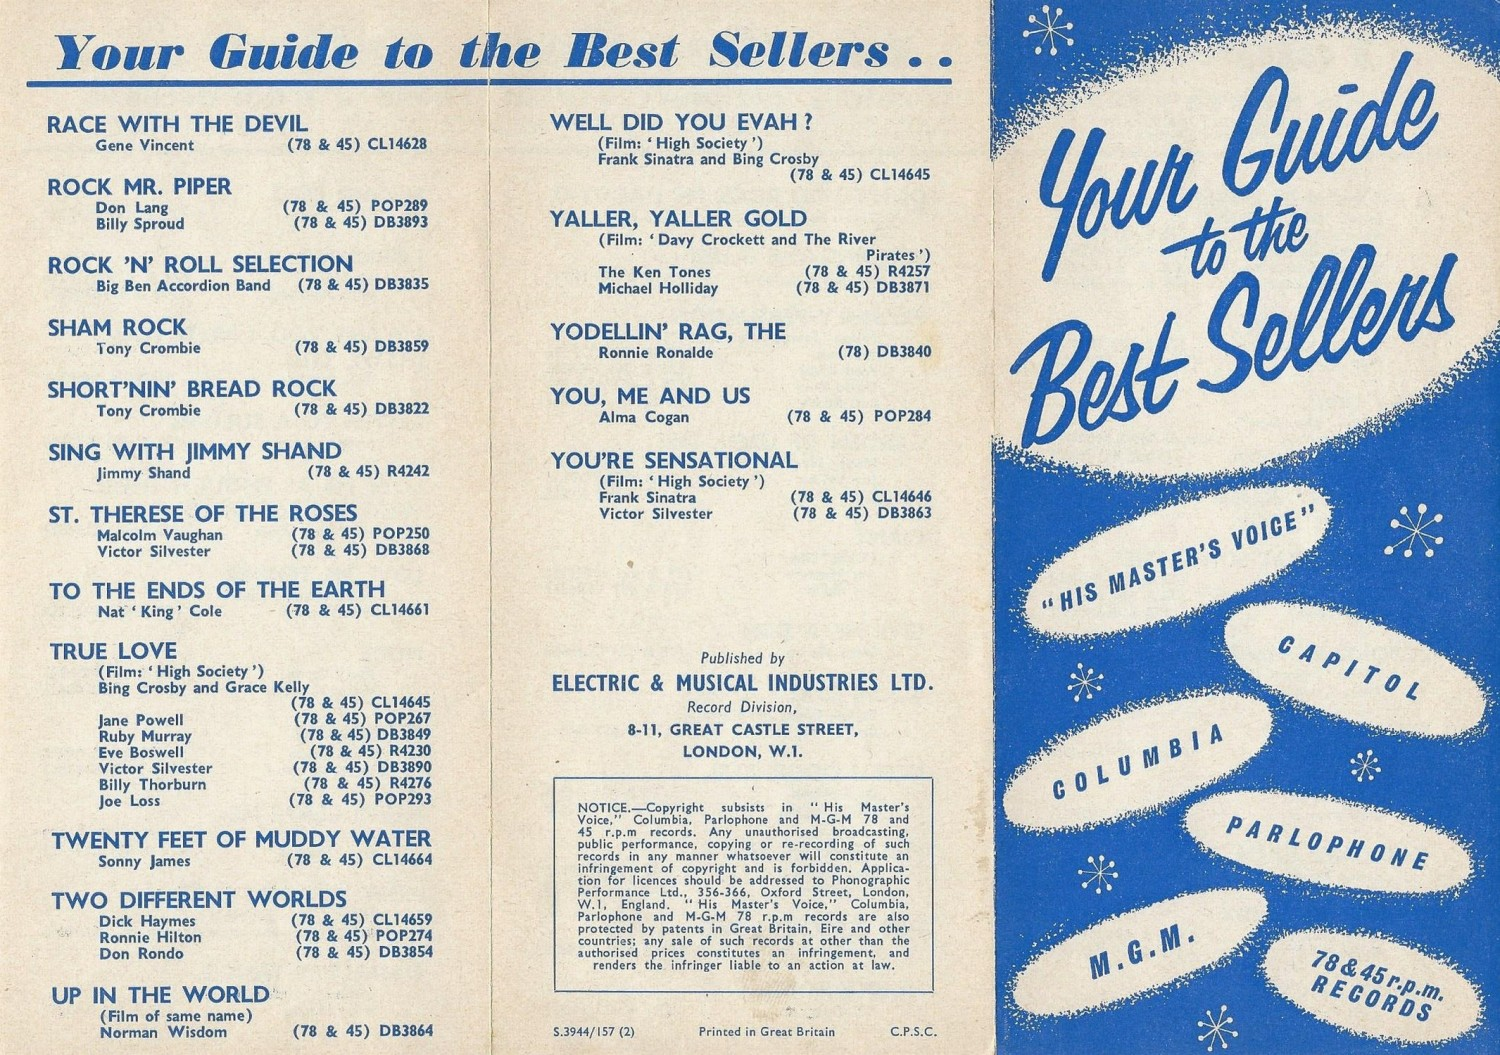 HMV Your Guide To Best Sellers 1957-01 (Alan White) 01